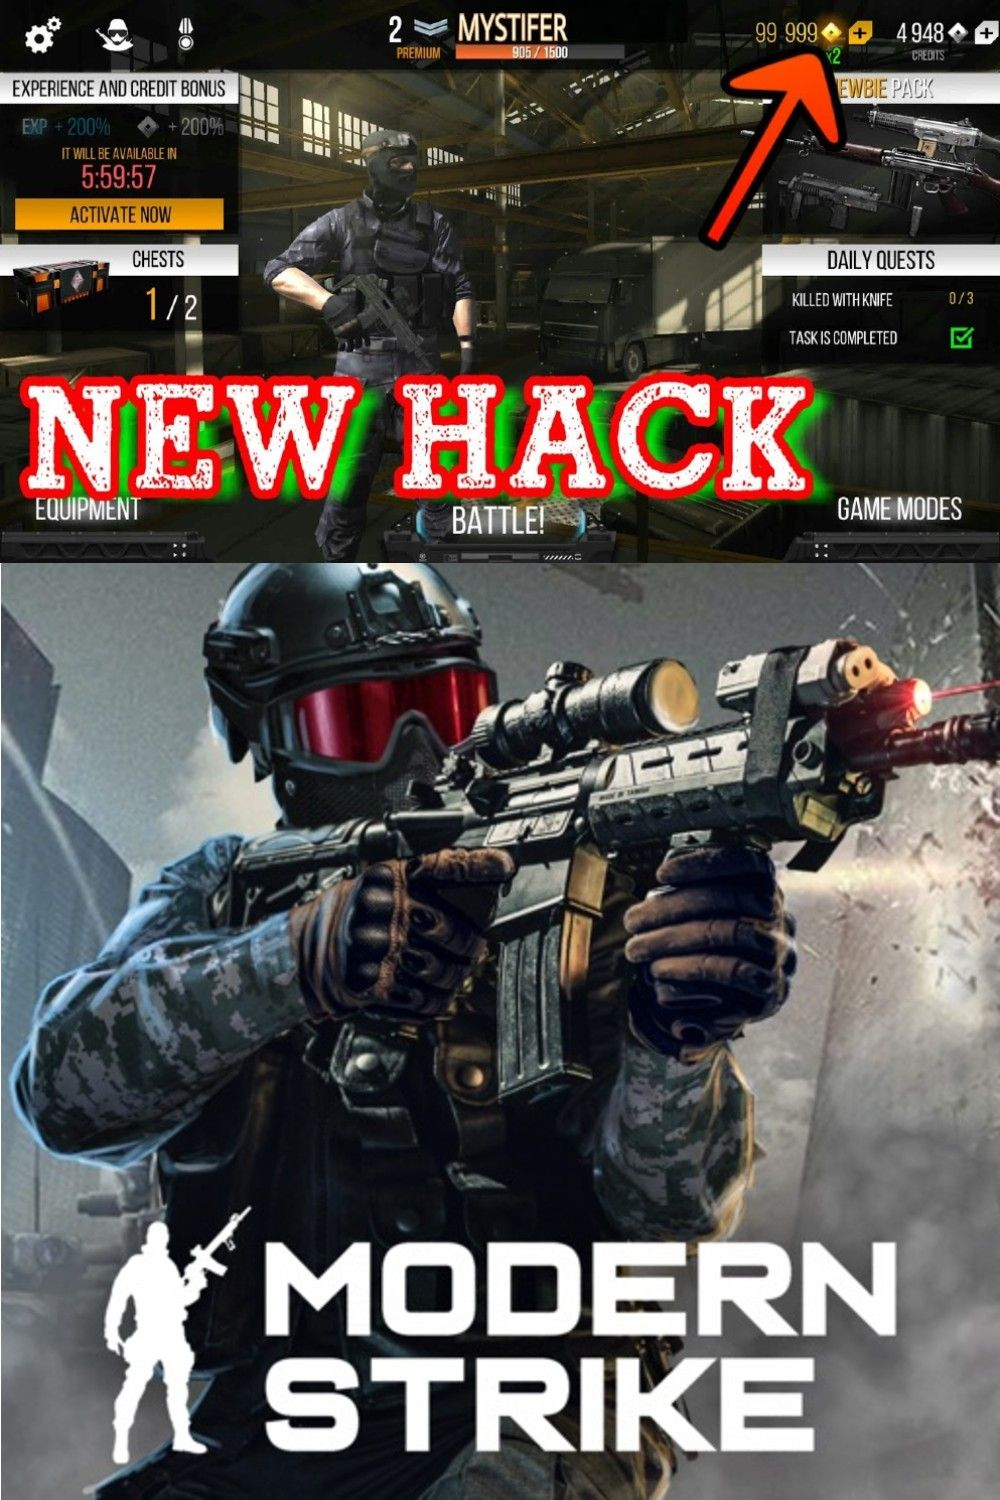 Download Sudden Strike 2 Gold For PC Free Strategy games